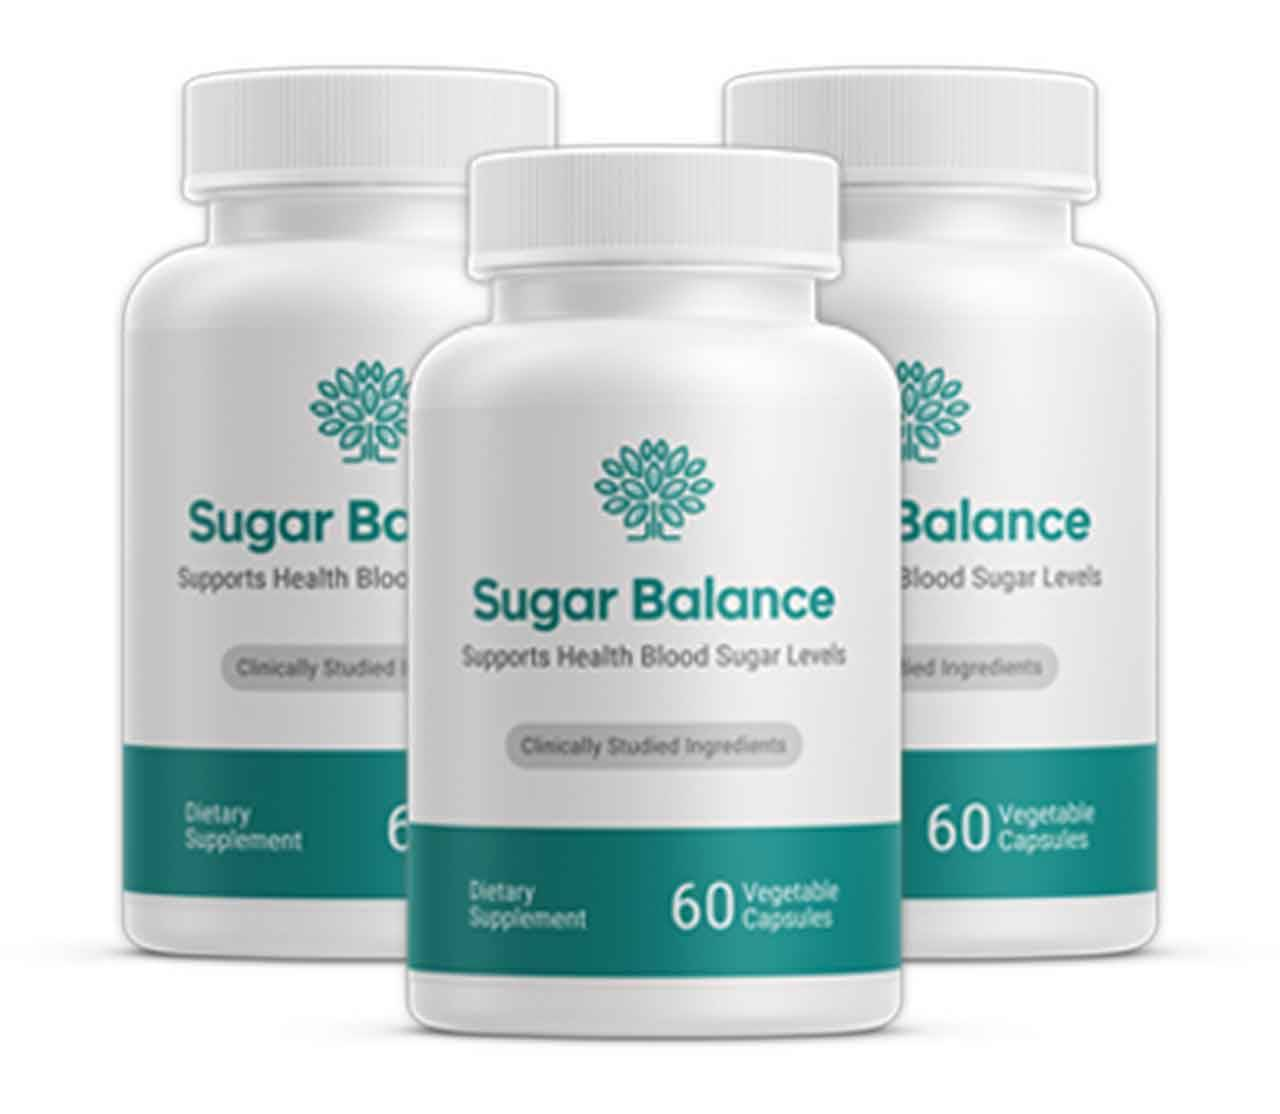 Sugar balance is the best way to naturally manage high blood sugar levels